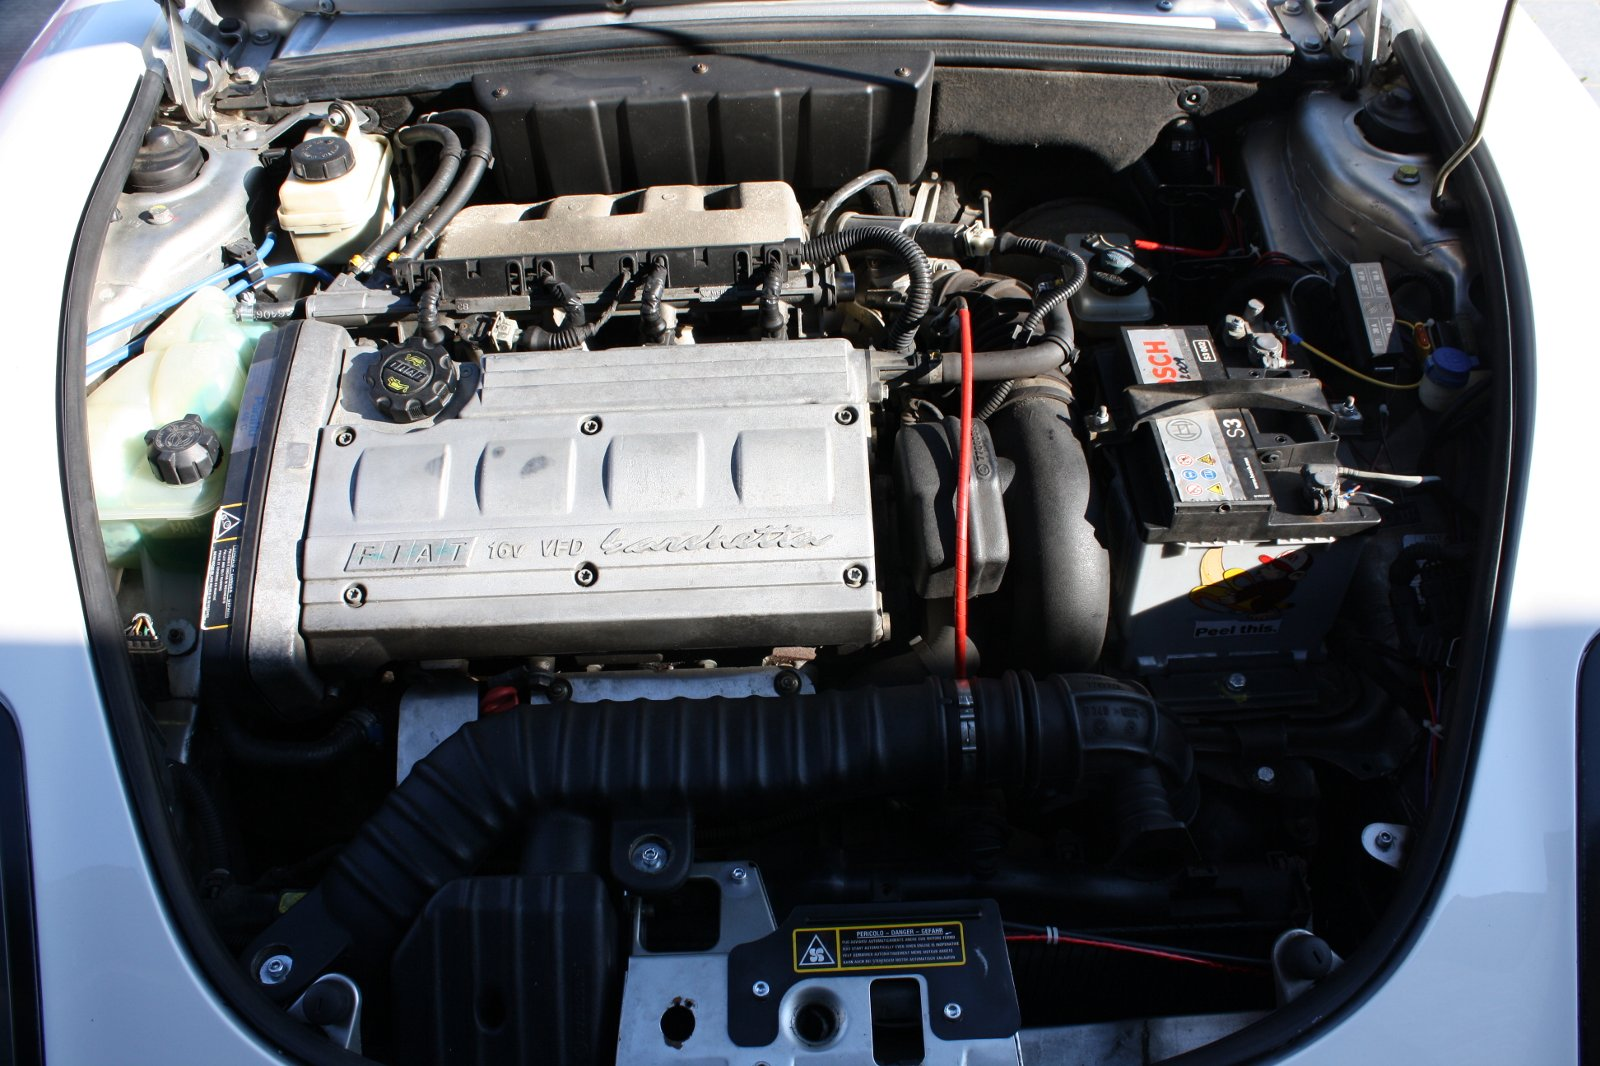 FIAT BARCHETTA engine